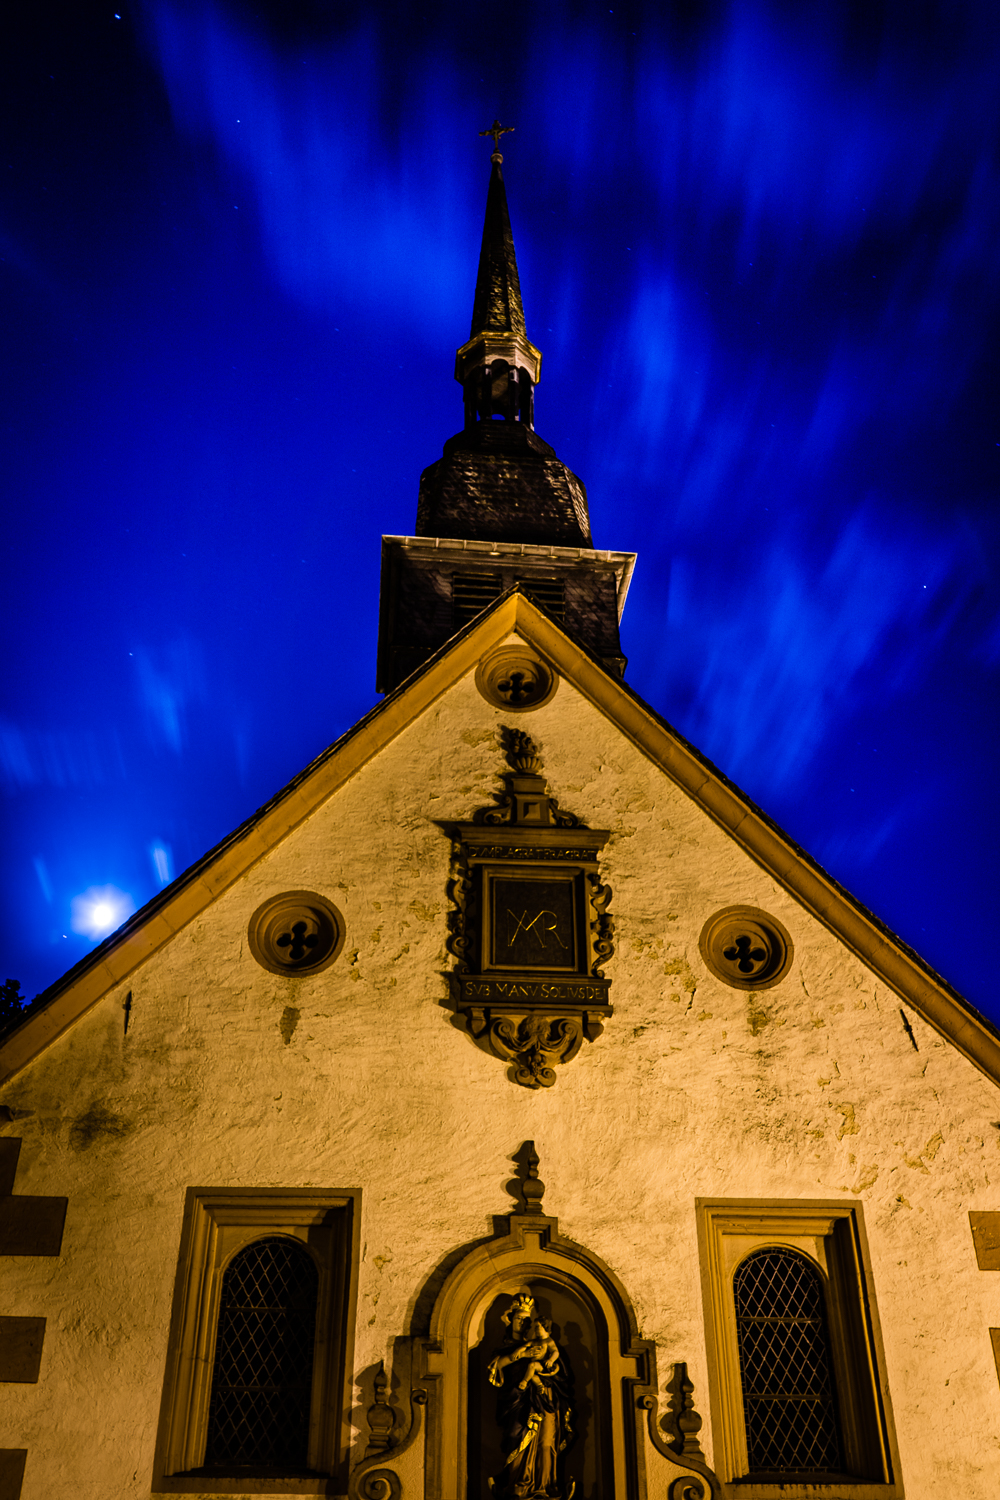 20140608 Echternach by night - RX1R - 01531.jpg